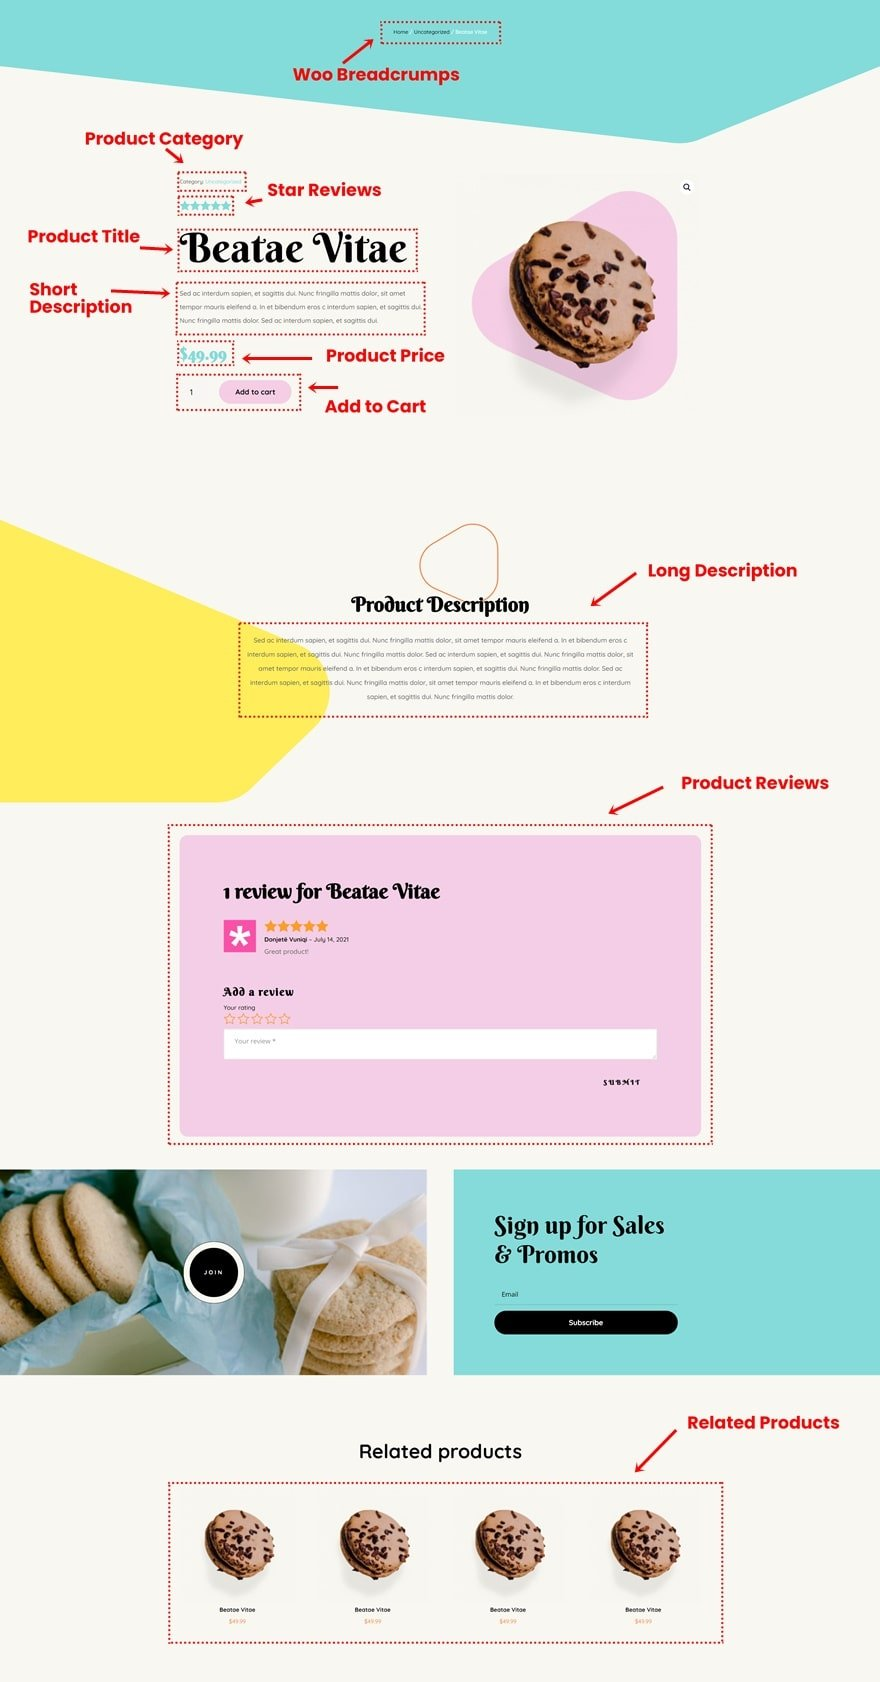 download-a-free-product-page-template-for-divis-homemade-cookies-layout-pack-8 Download a FREE Product Page Template for Divi's Homemade Cookies Layout Pack